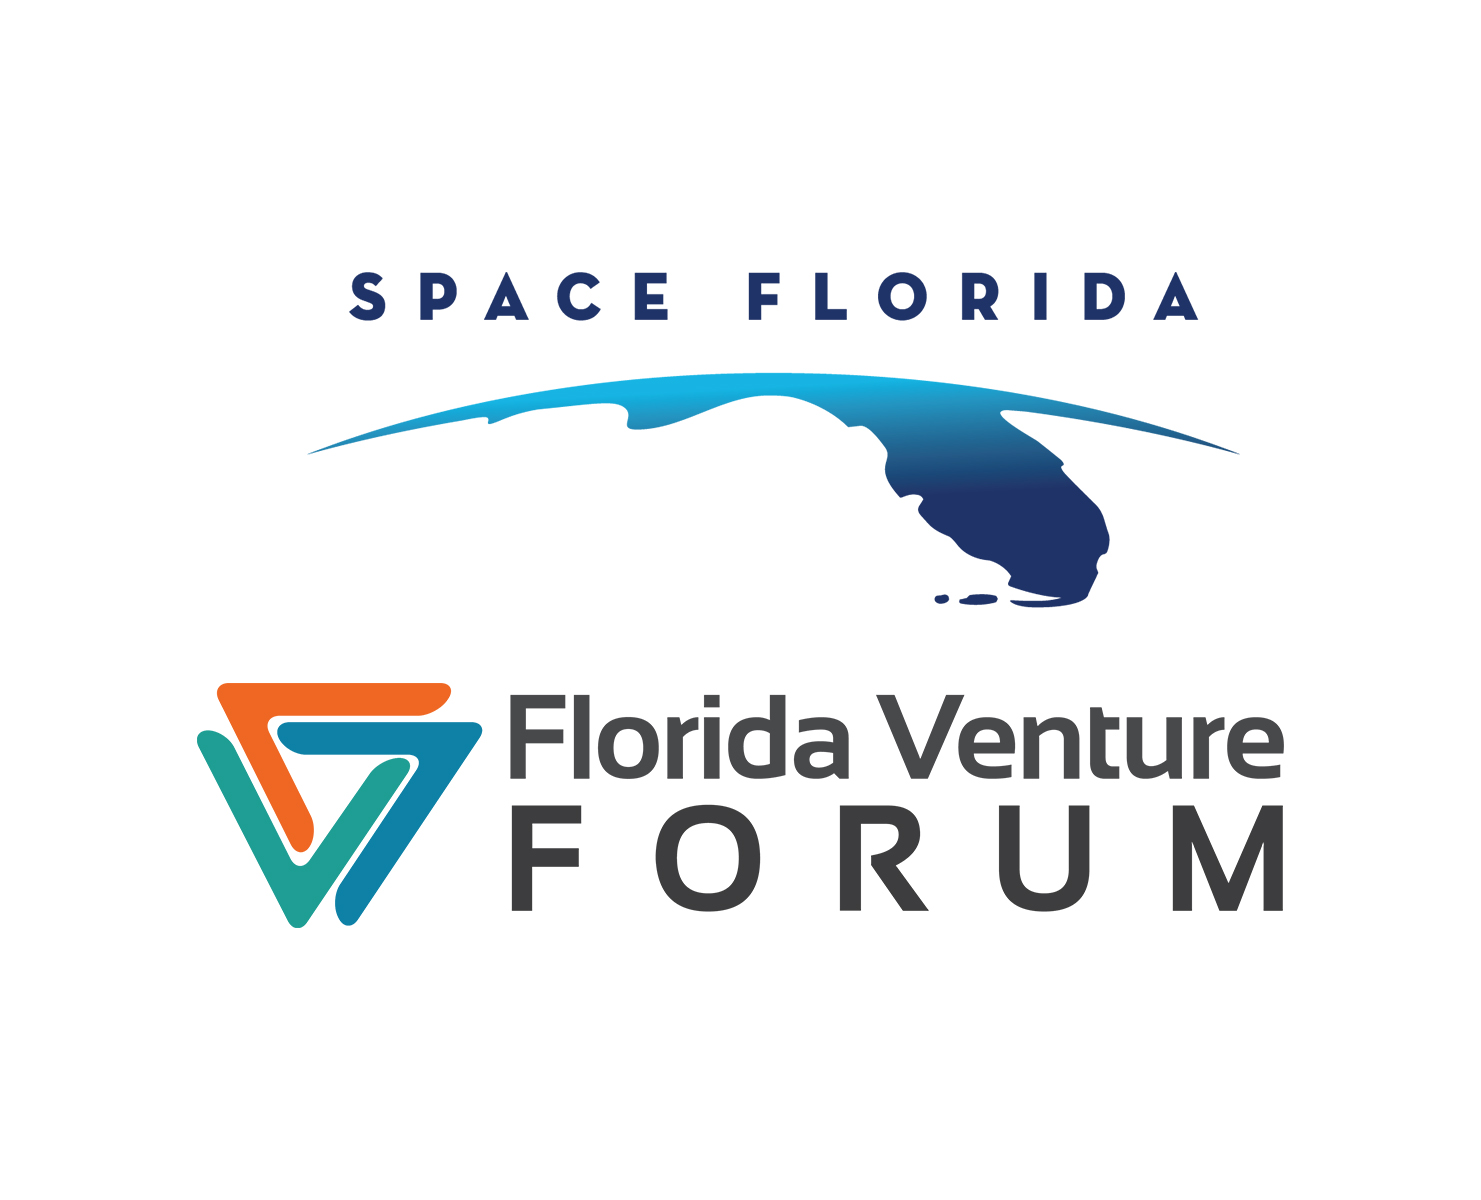 Space Florida and Florida Venture Forum Logos